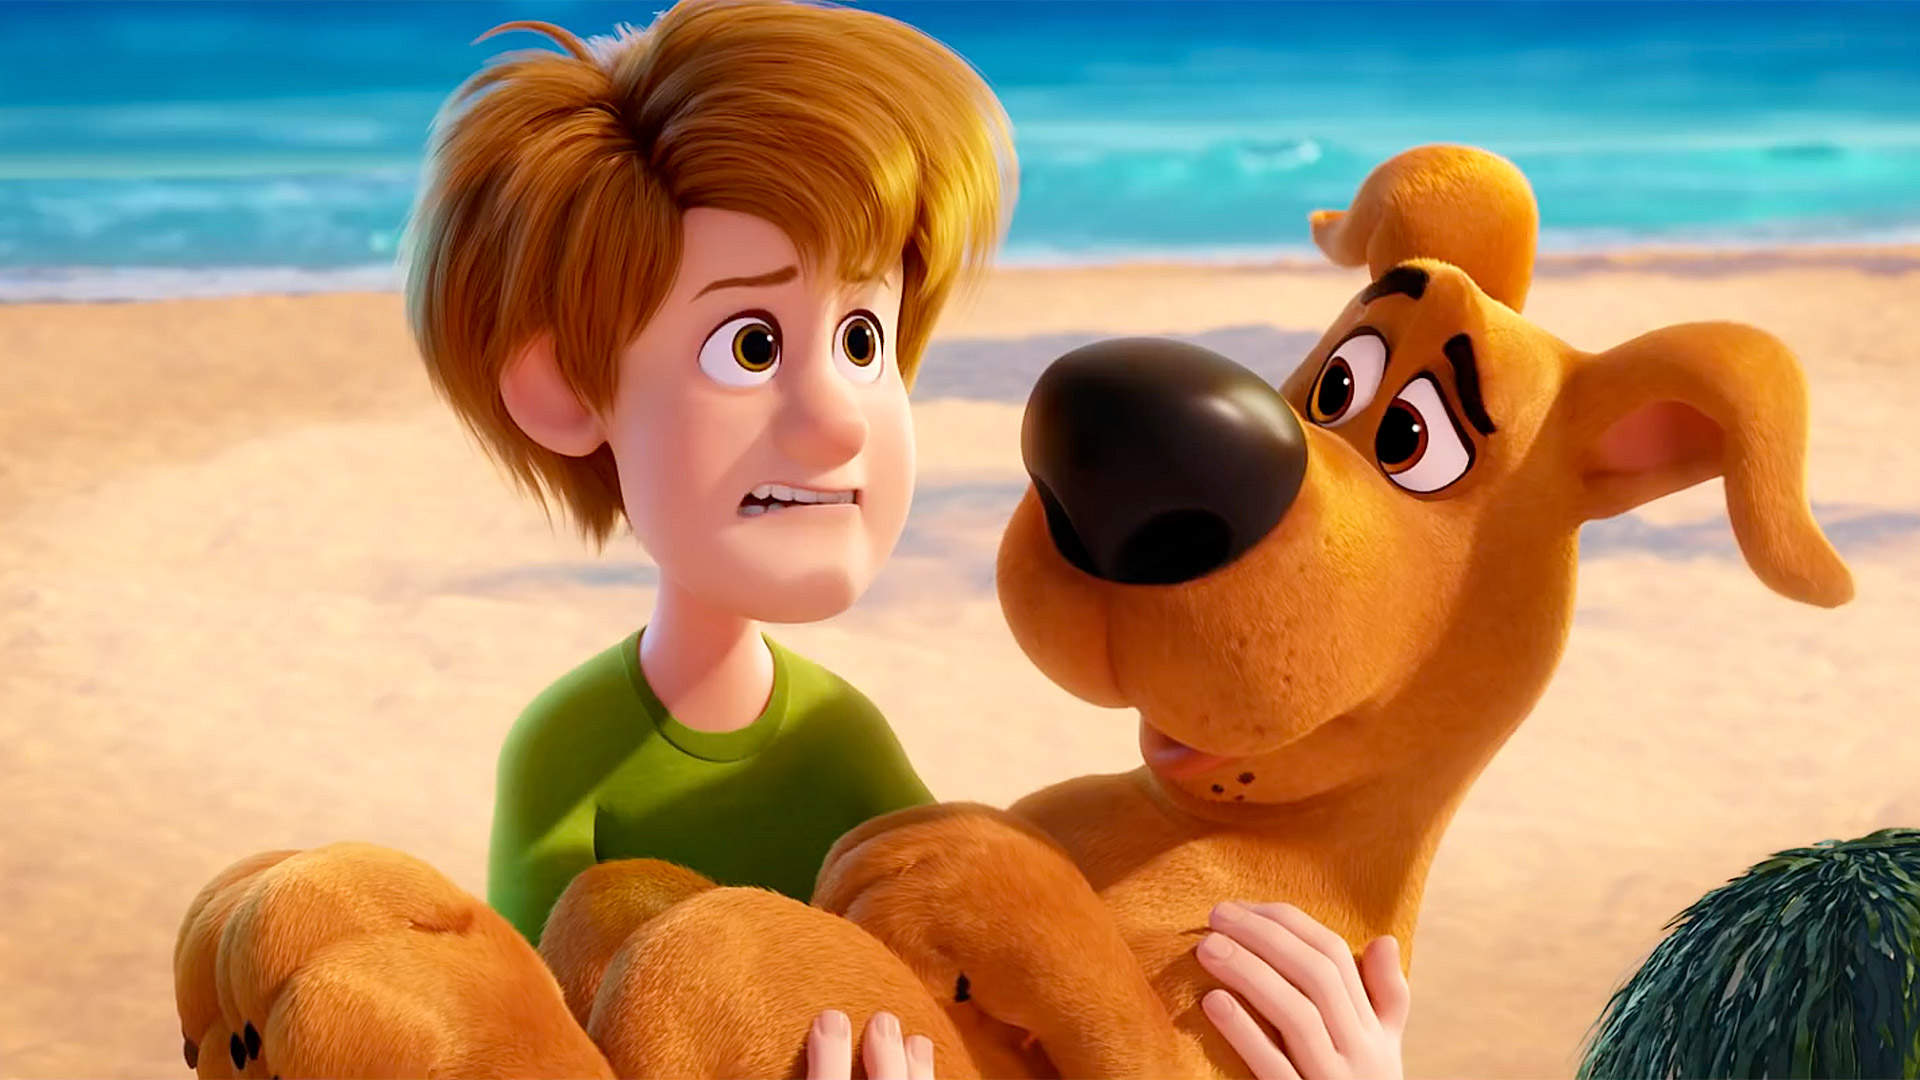 Scoob! - Official Final Trailer - One News Page VIDEO